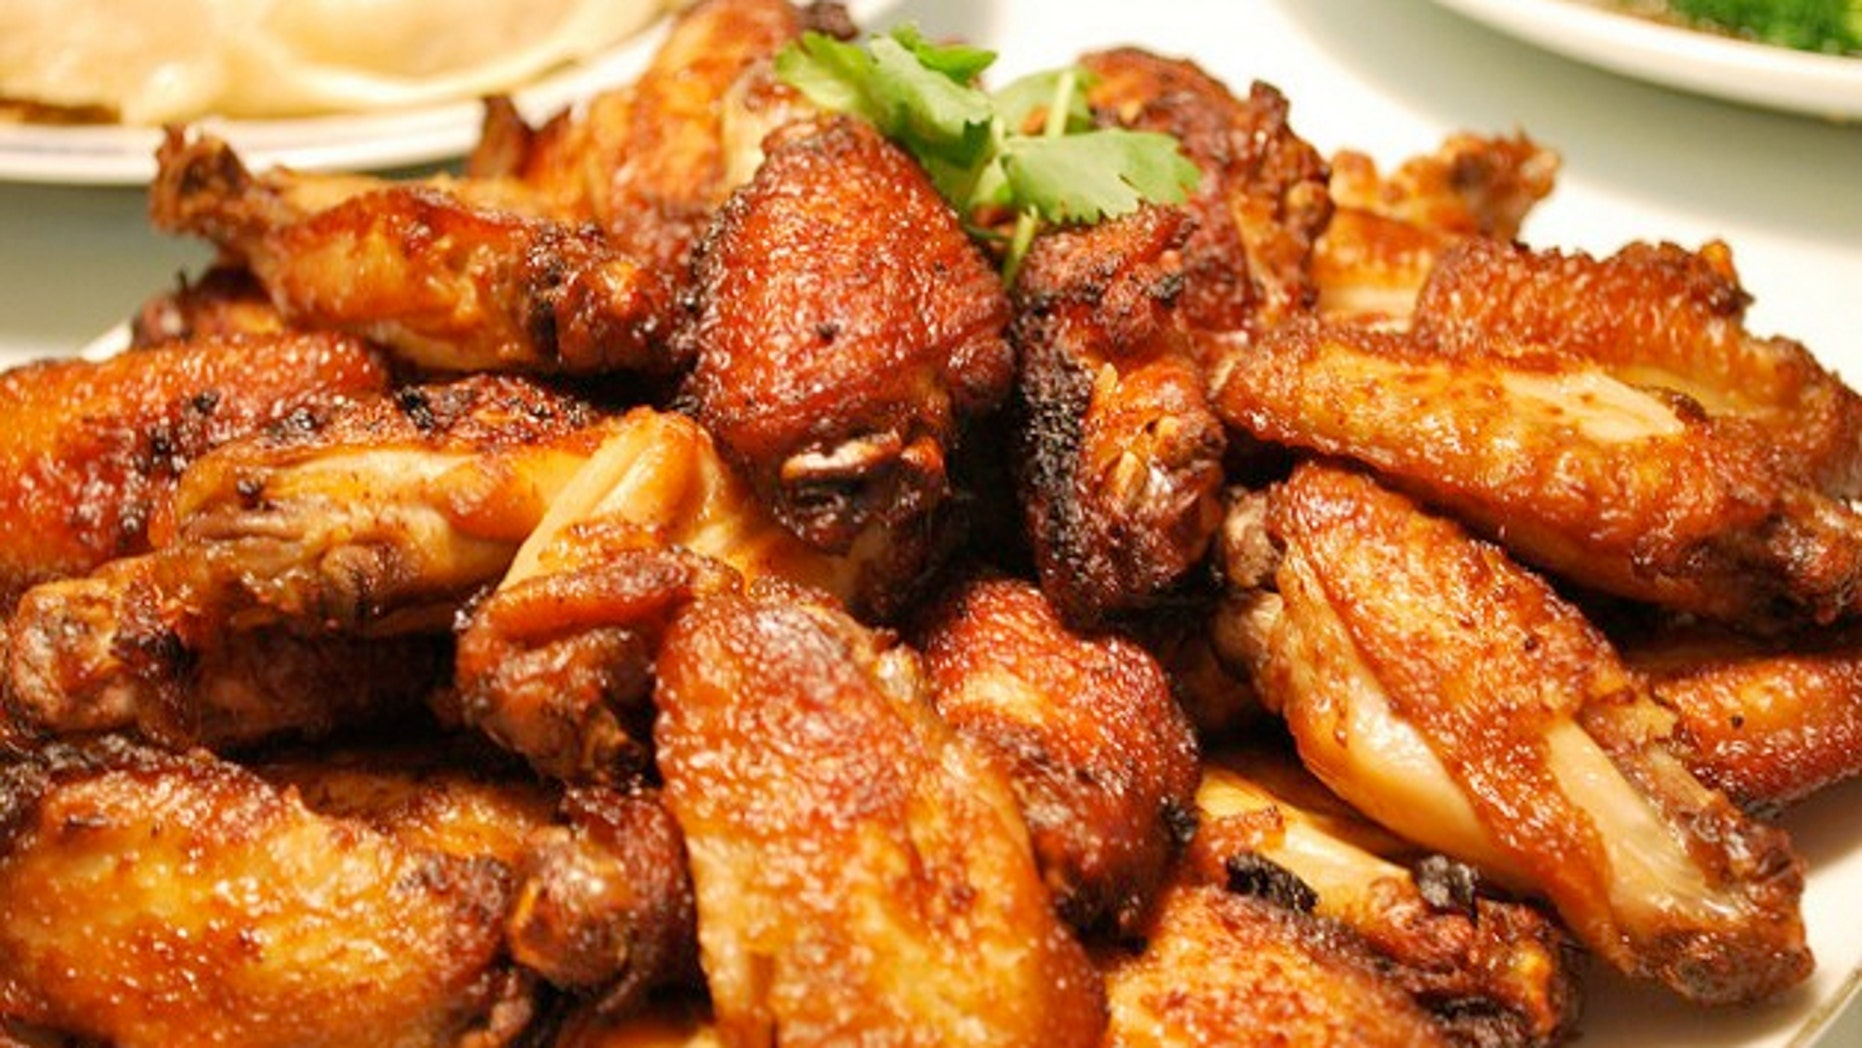 Deputies say the men placed numerous chicken wing orders with the restaurant's wholesaler and then would resell them at a reduced price.